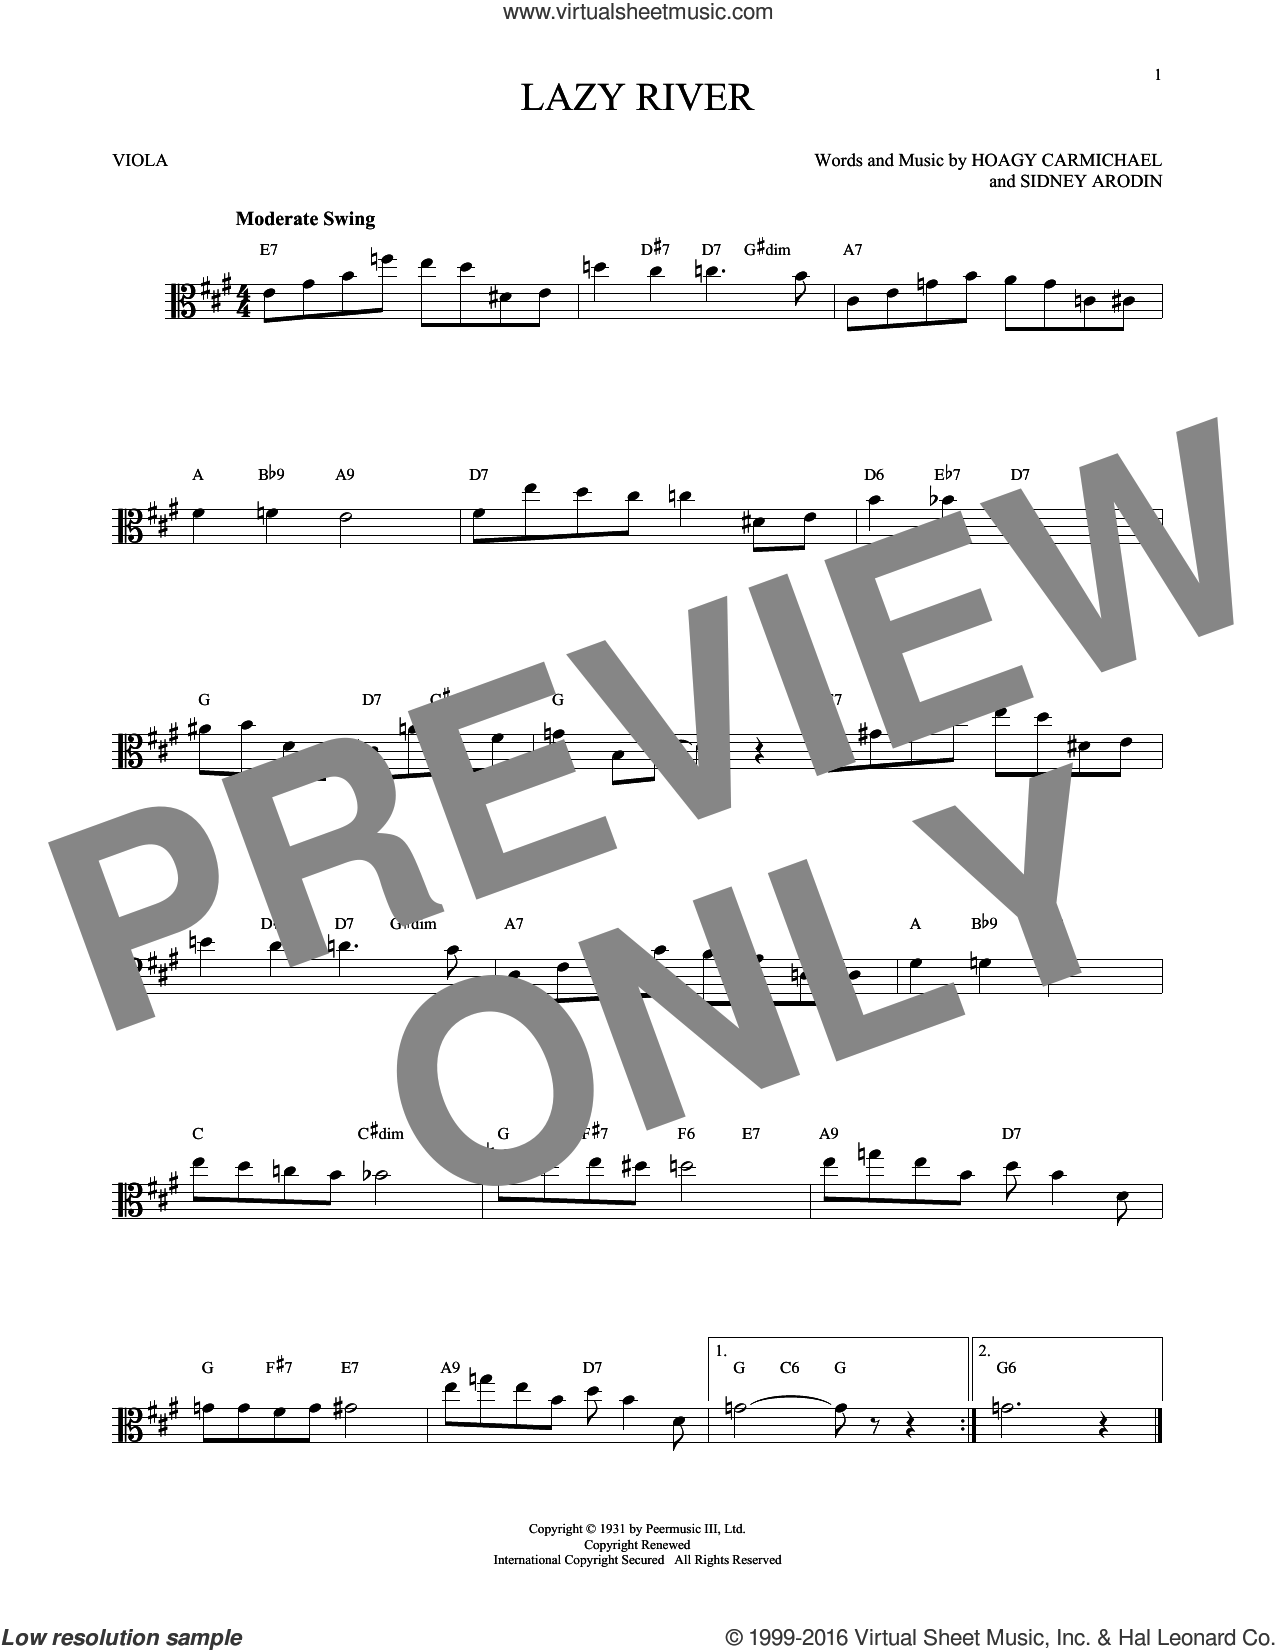 Lazy River sheet music for viola solo by Hoagy Carmichael, Bobby Darin and Sidney Arodin, intermediate skill level